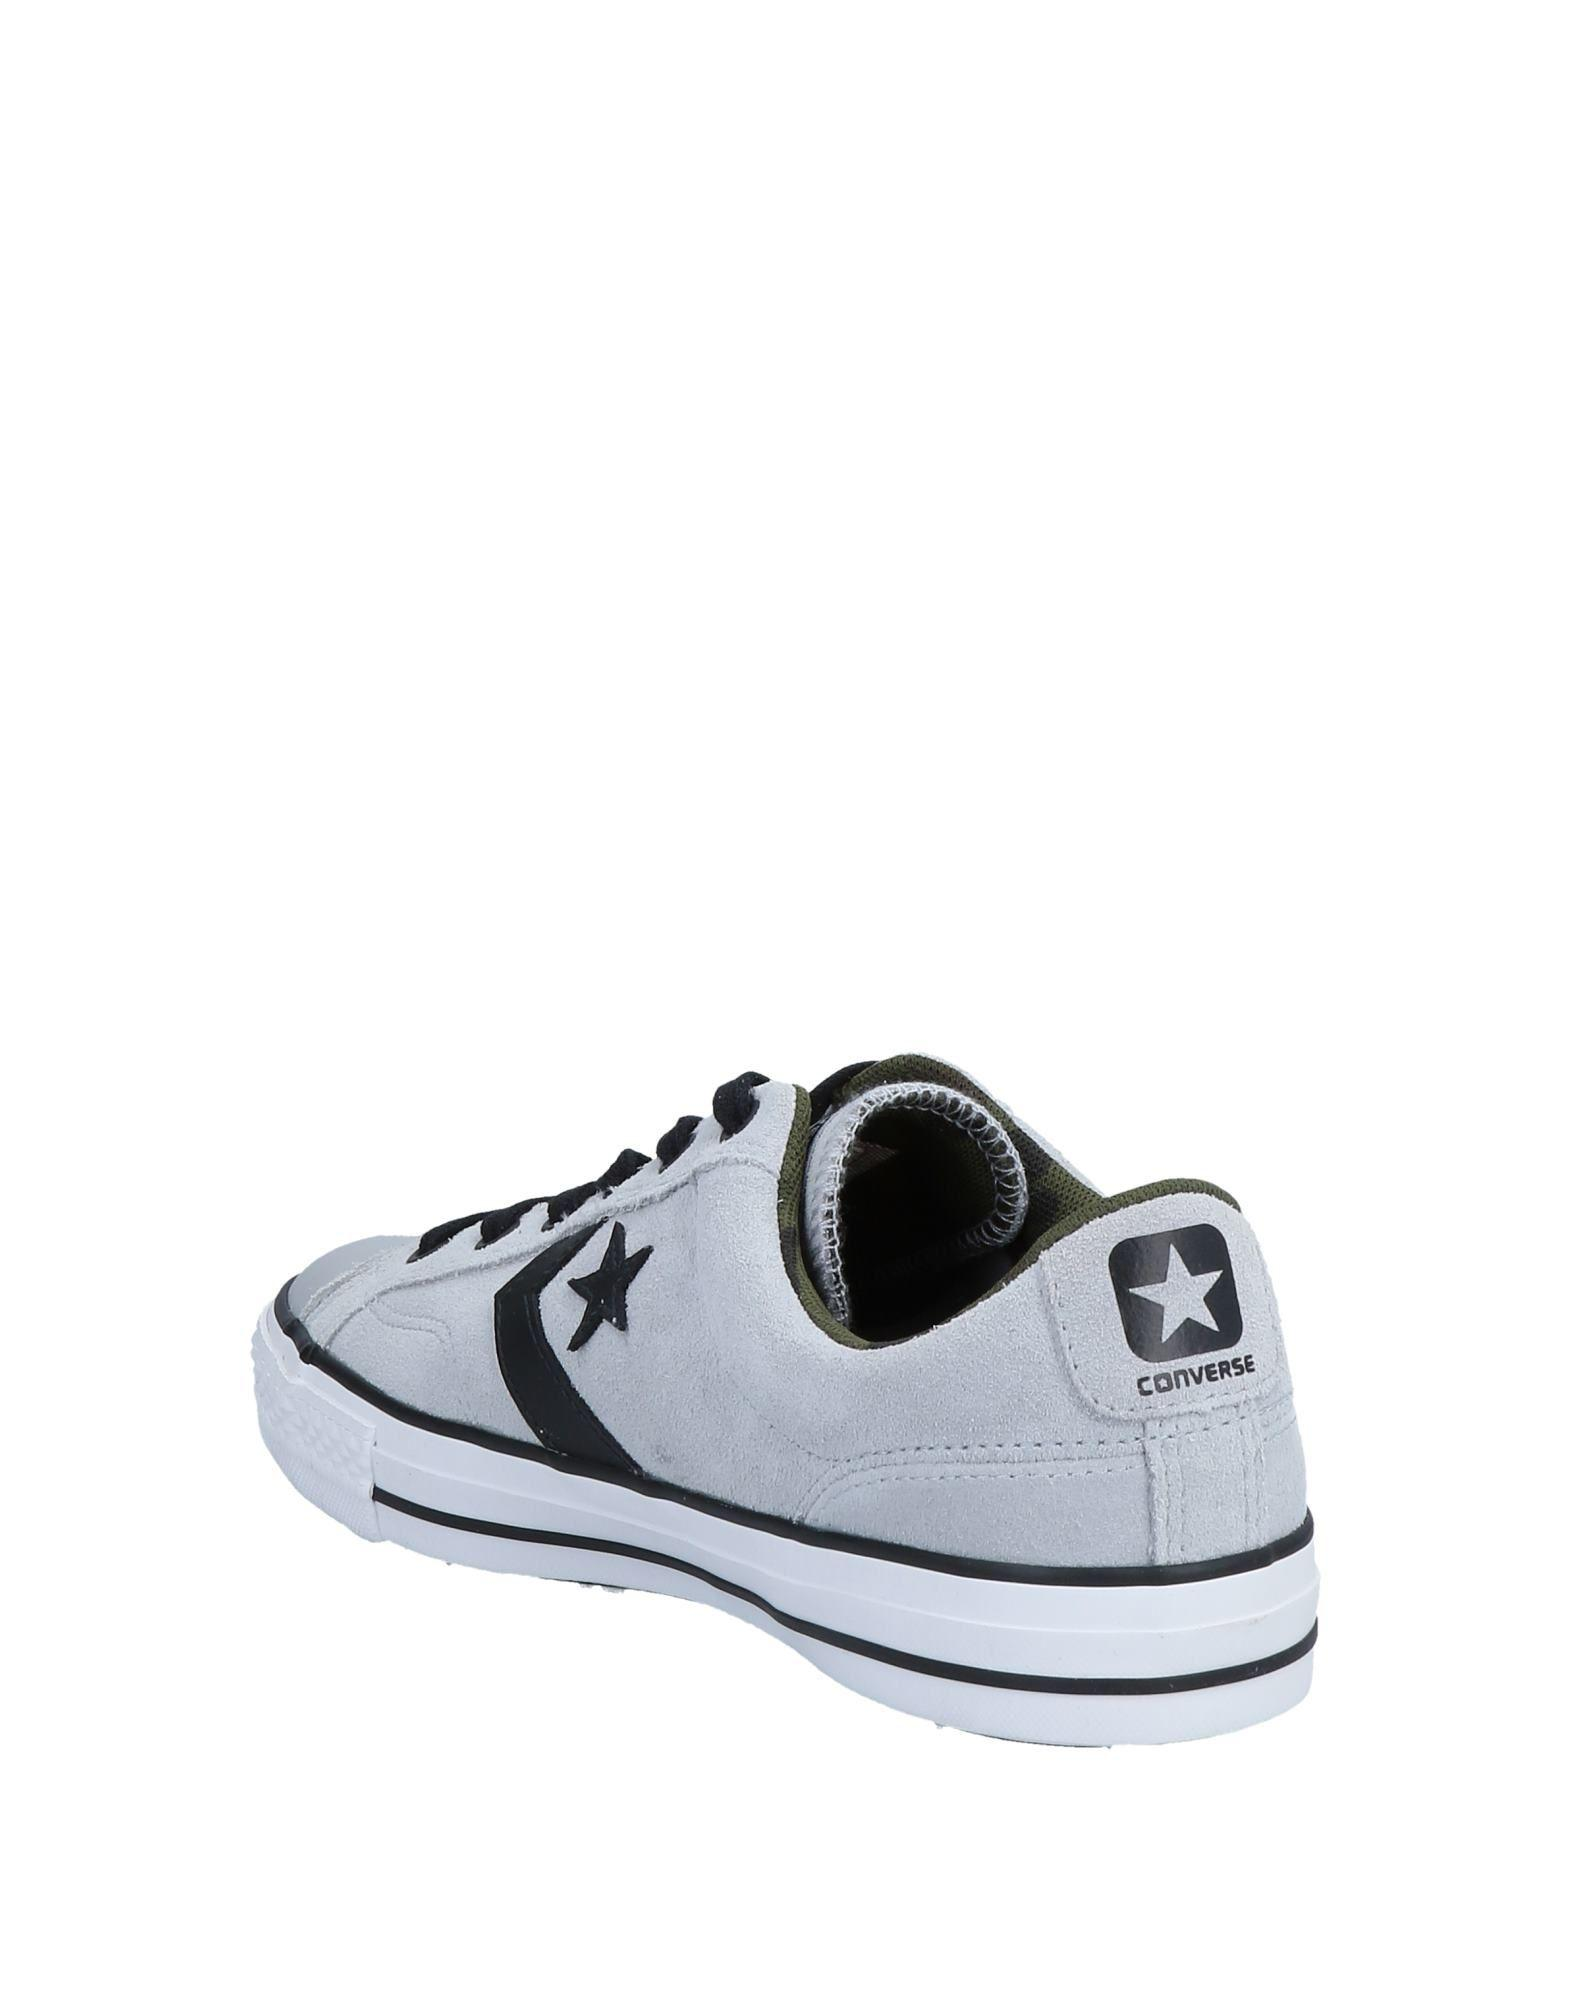 04fb6a484493 Converse Low-tops   Sneakers in Gray for Men - Lyst